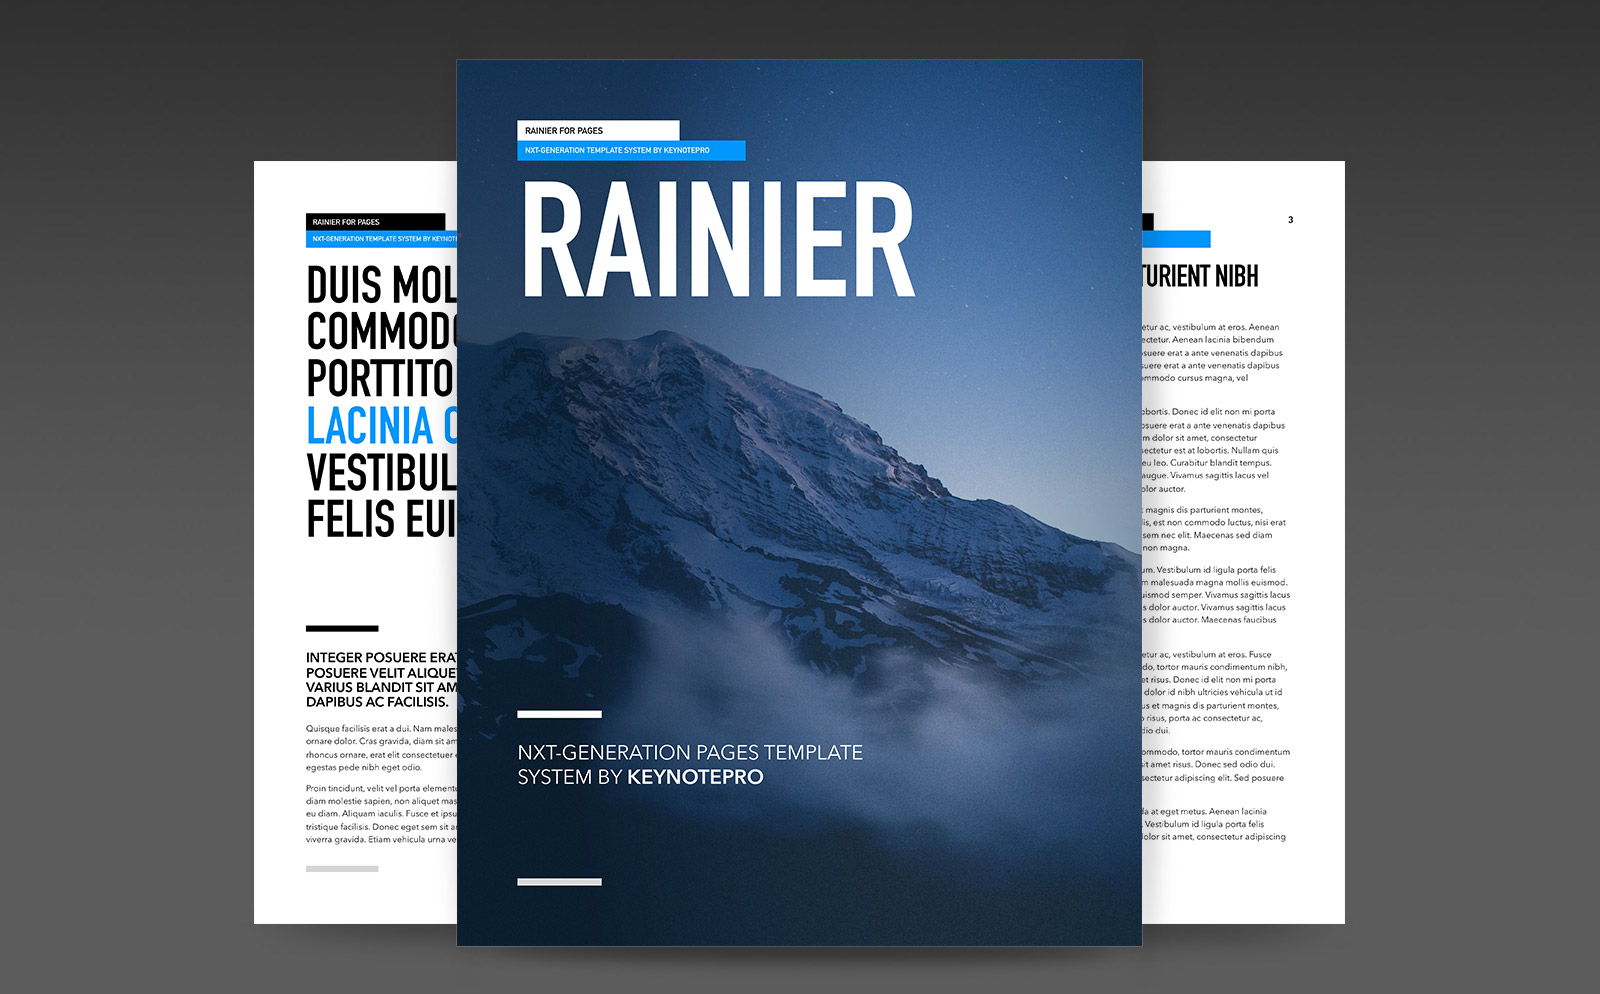 Rainier (NXT) Template System for Pages